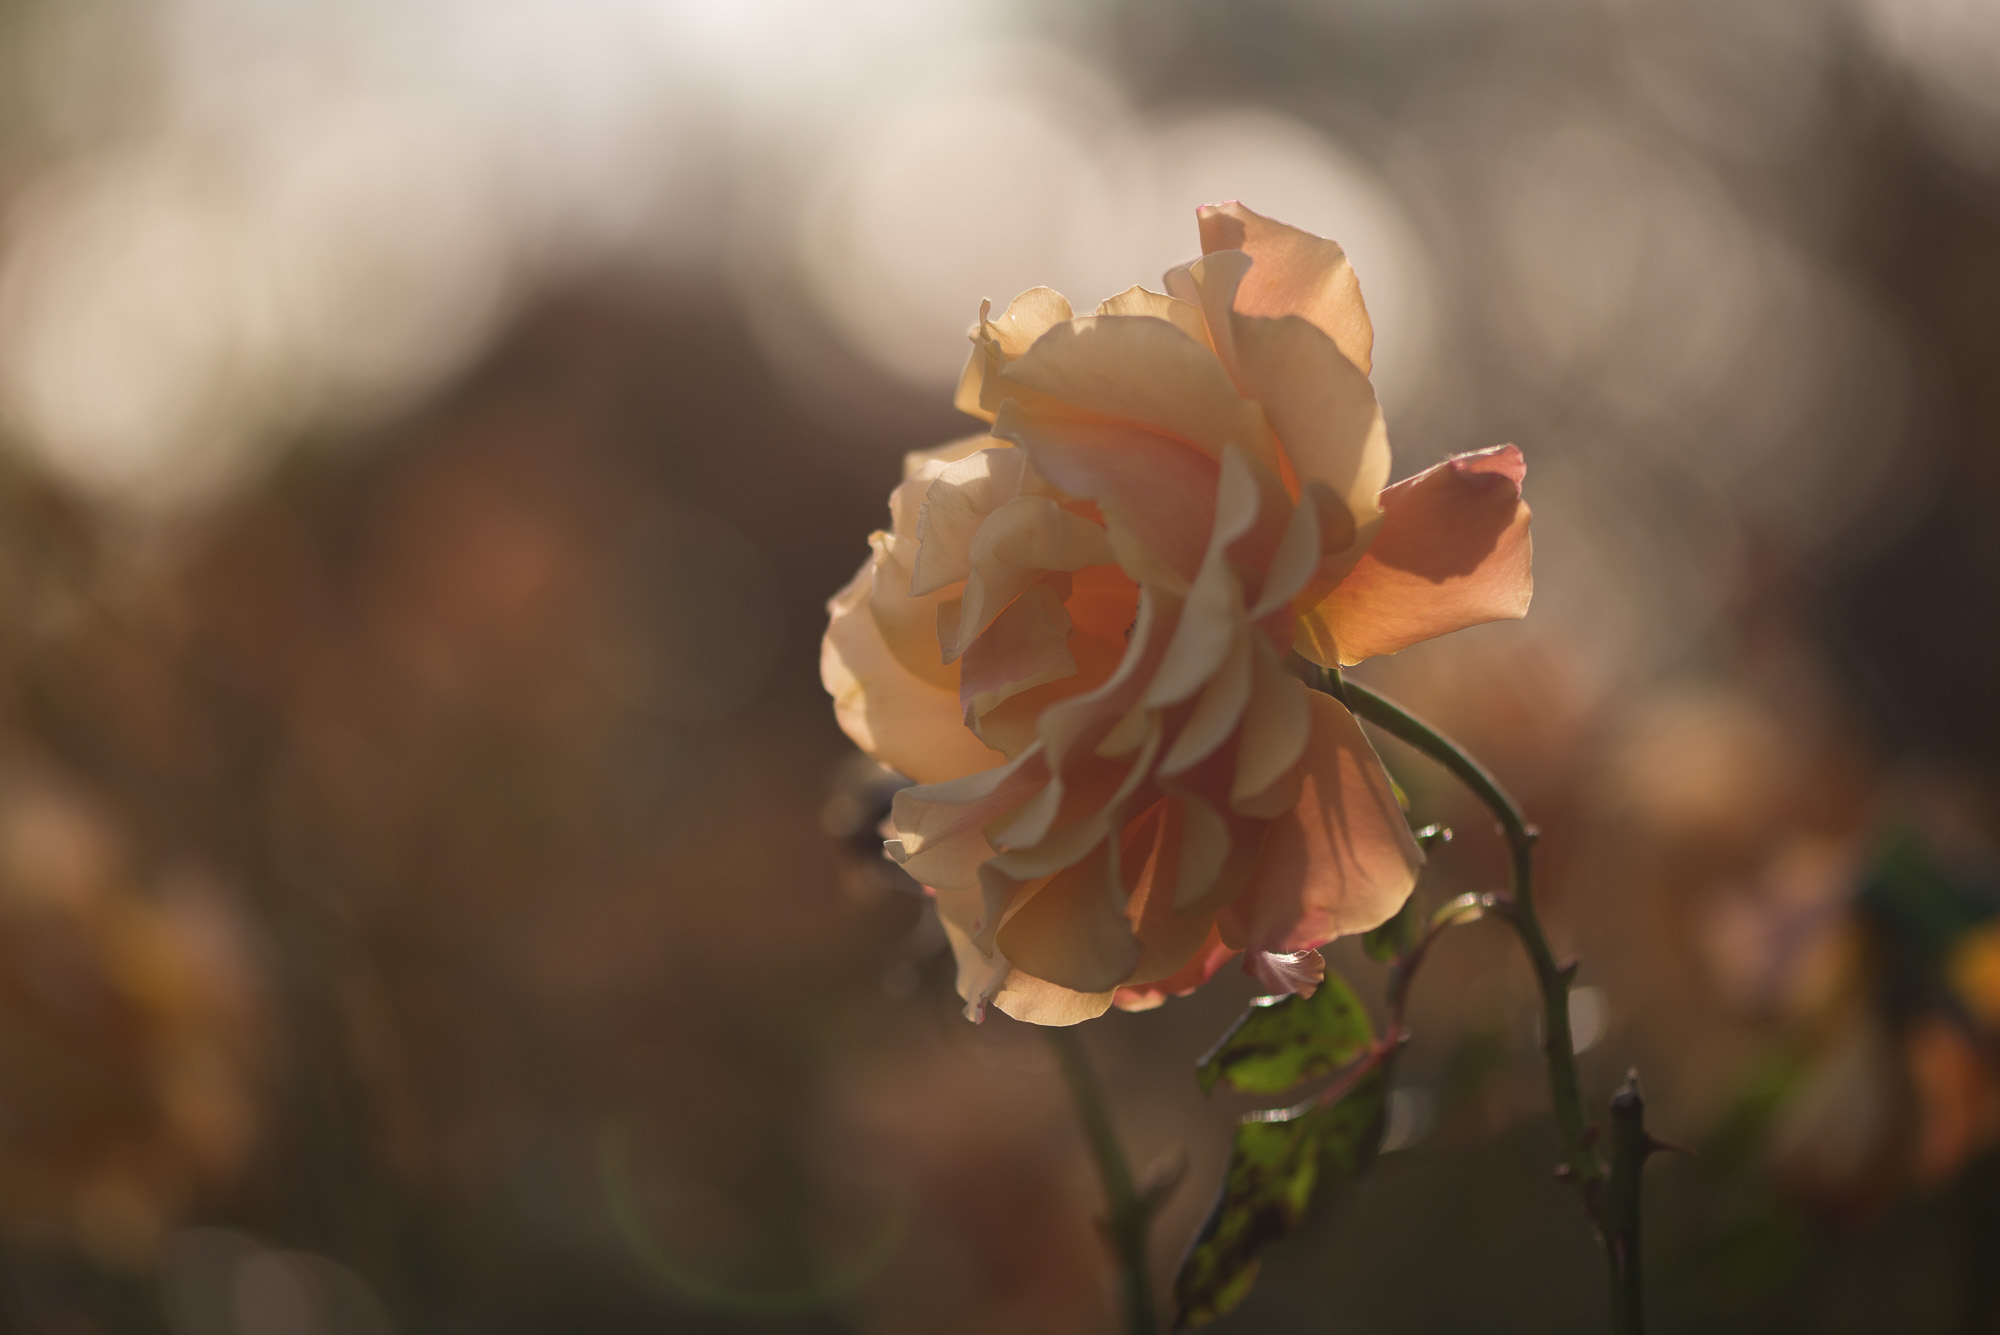 A close macro photo of a pale orange rose, with soft dappled light in the background.